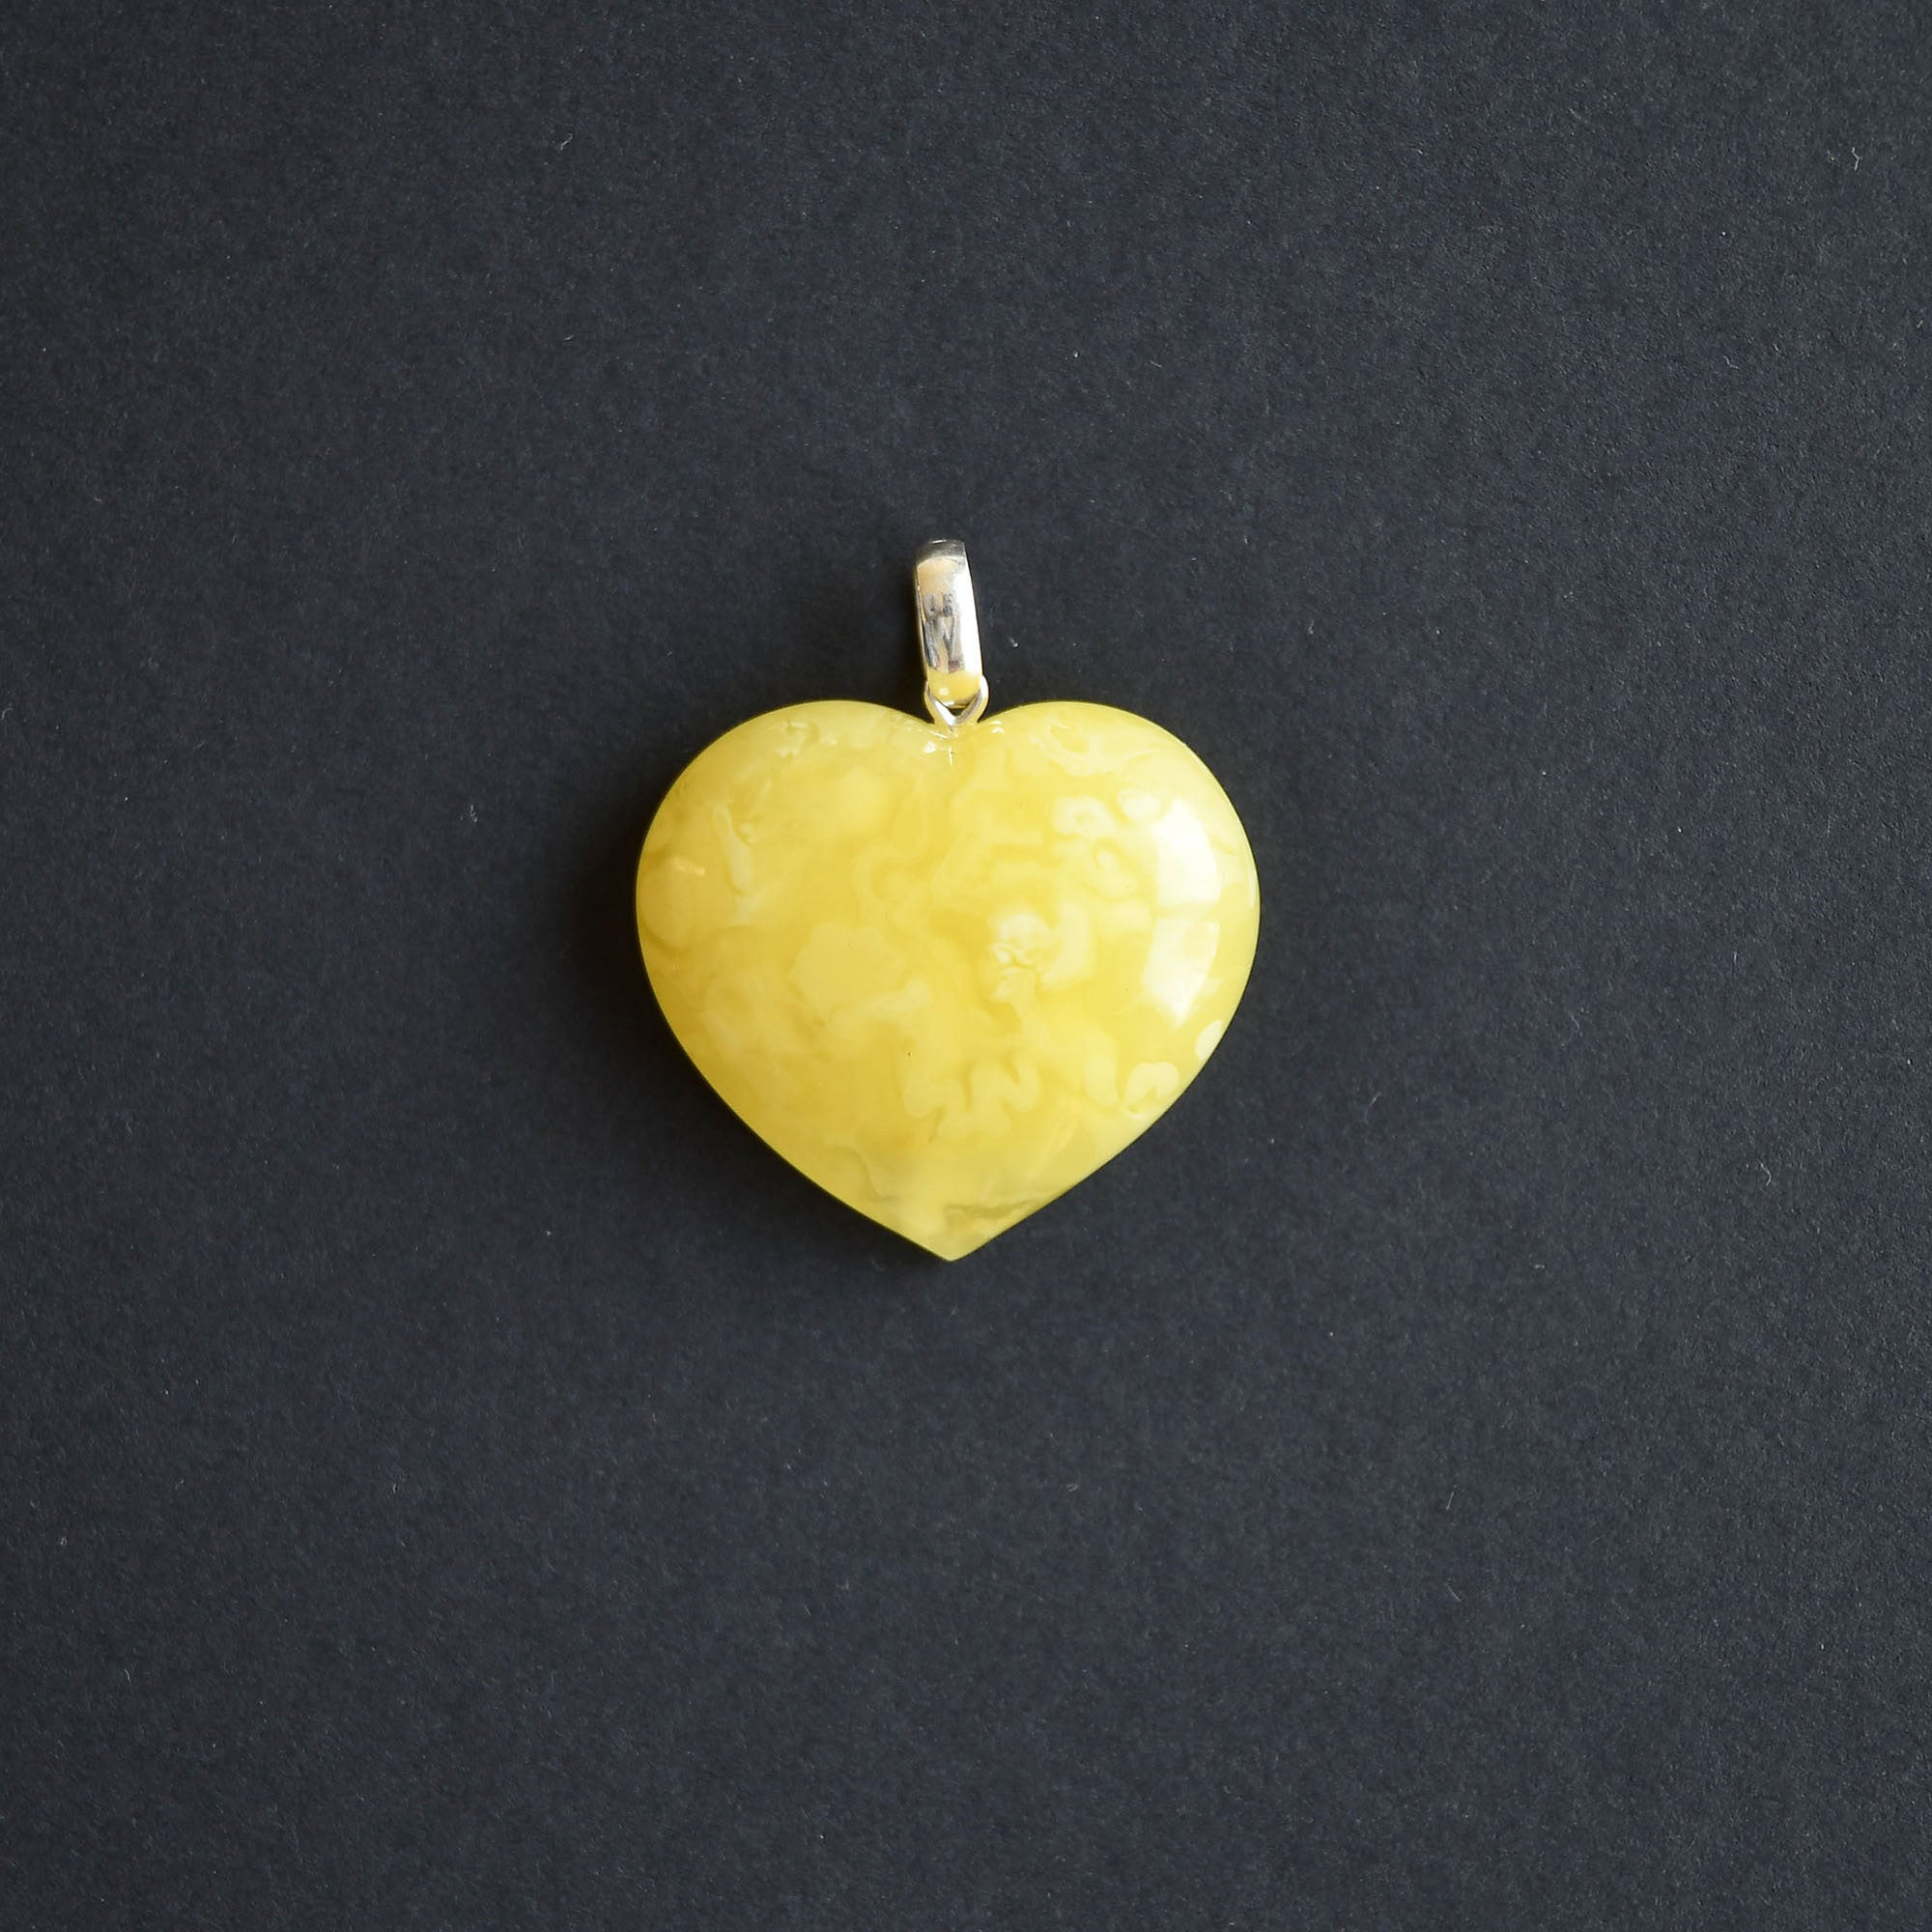 Amber heart of an unusual maize lemon colour with silver loop